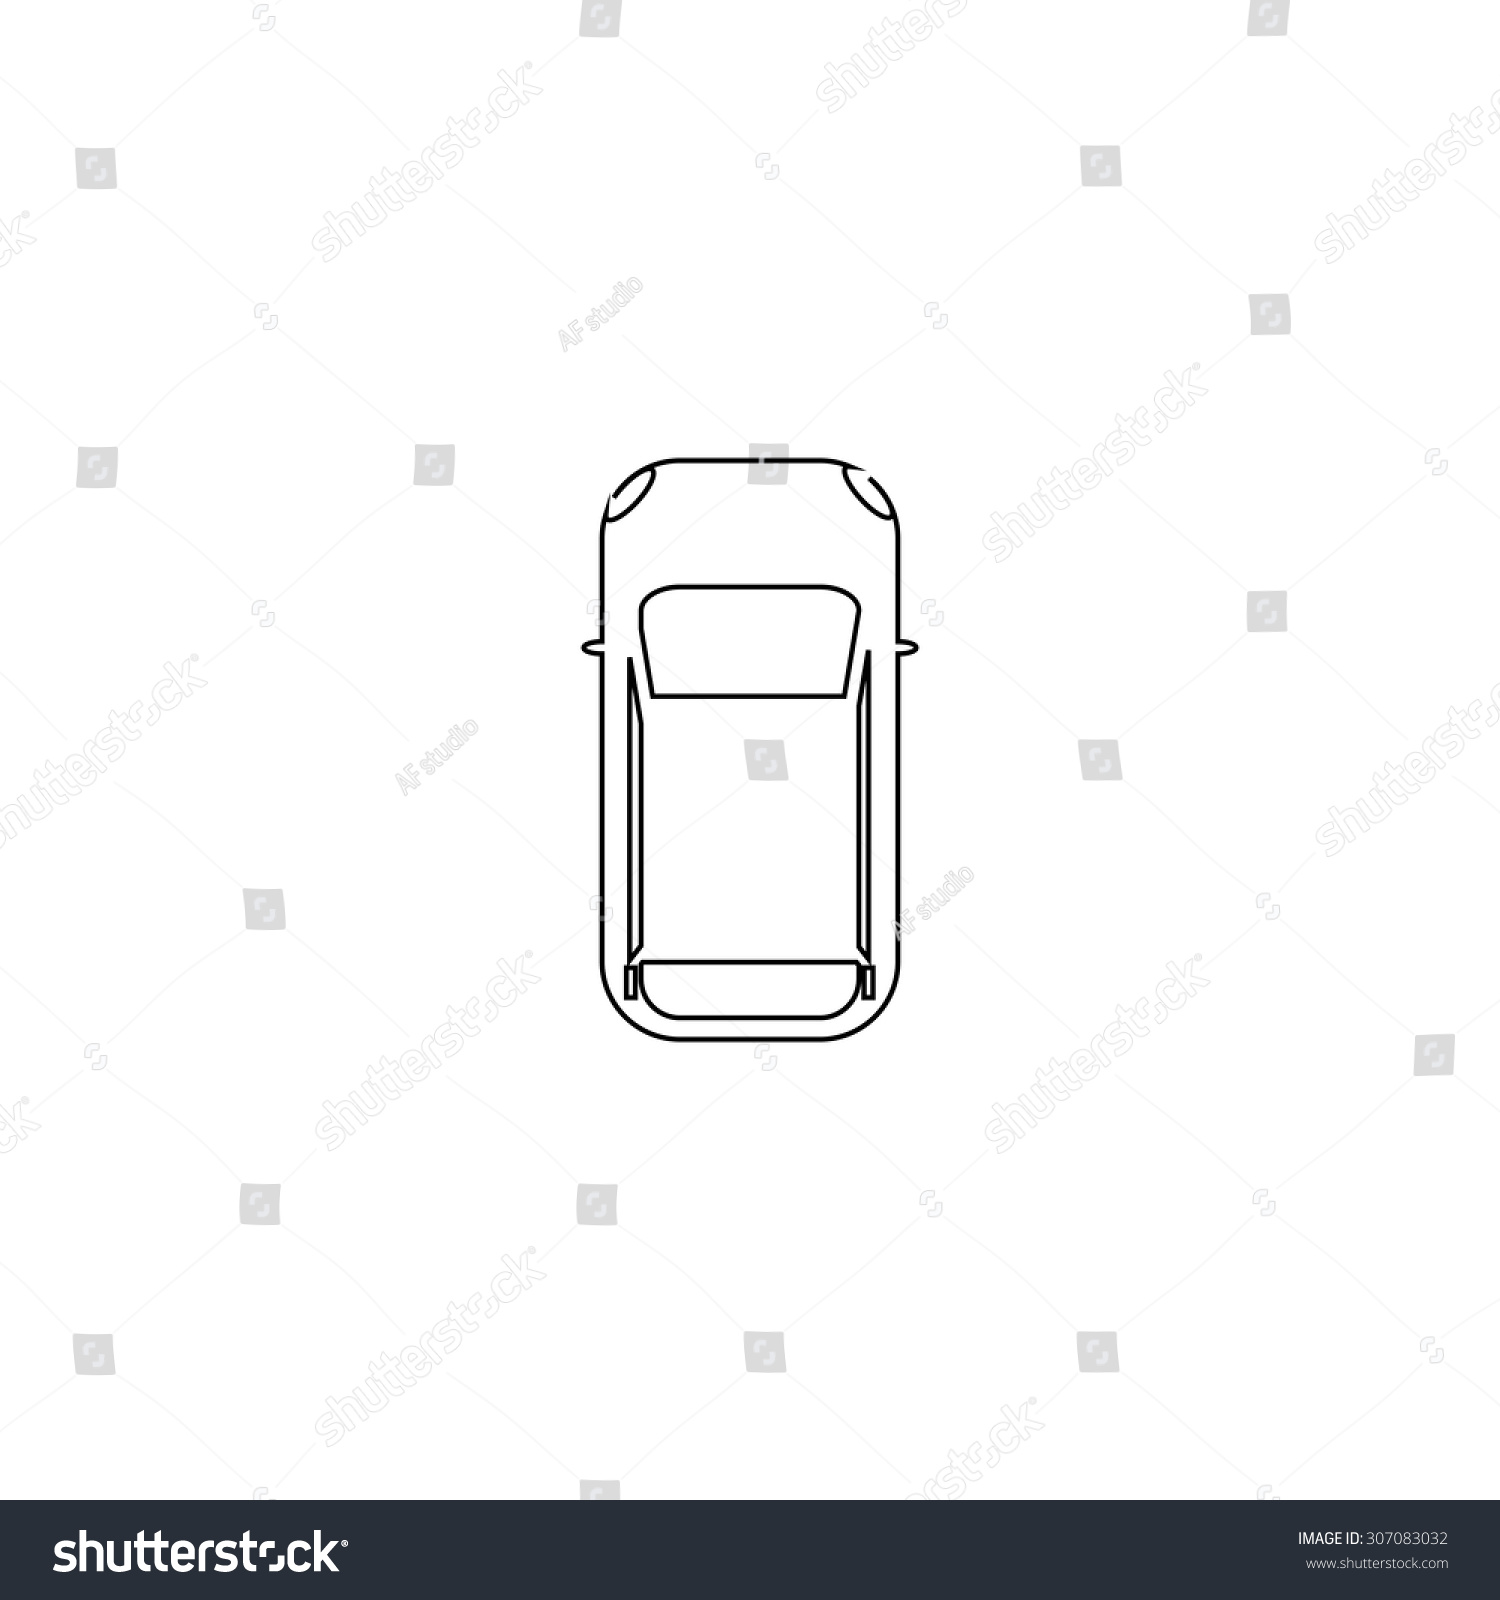 Simple Car Top View Outline Black Stock Vector 307083032 - Shutterstock